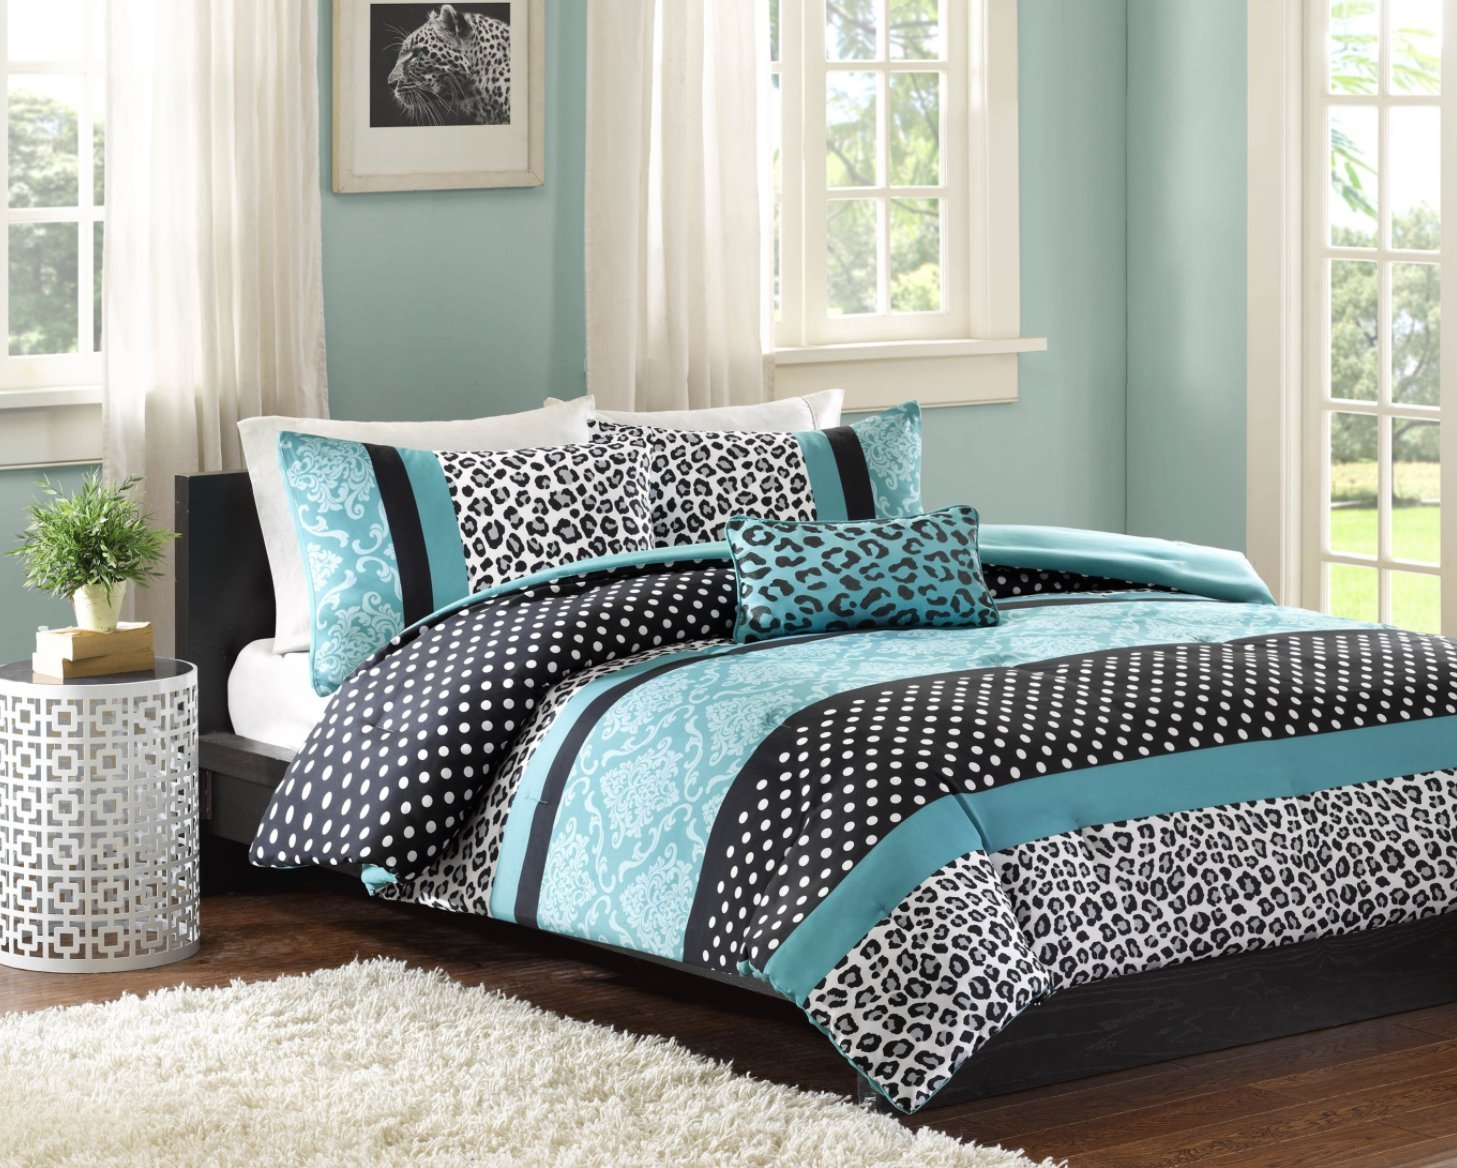 MODERN CUTE FUN BLUE AQUA TEAL PINK PURPLE GREEN POLKA DOT ... |Teen Bedding Sets For Fun